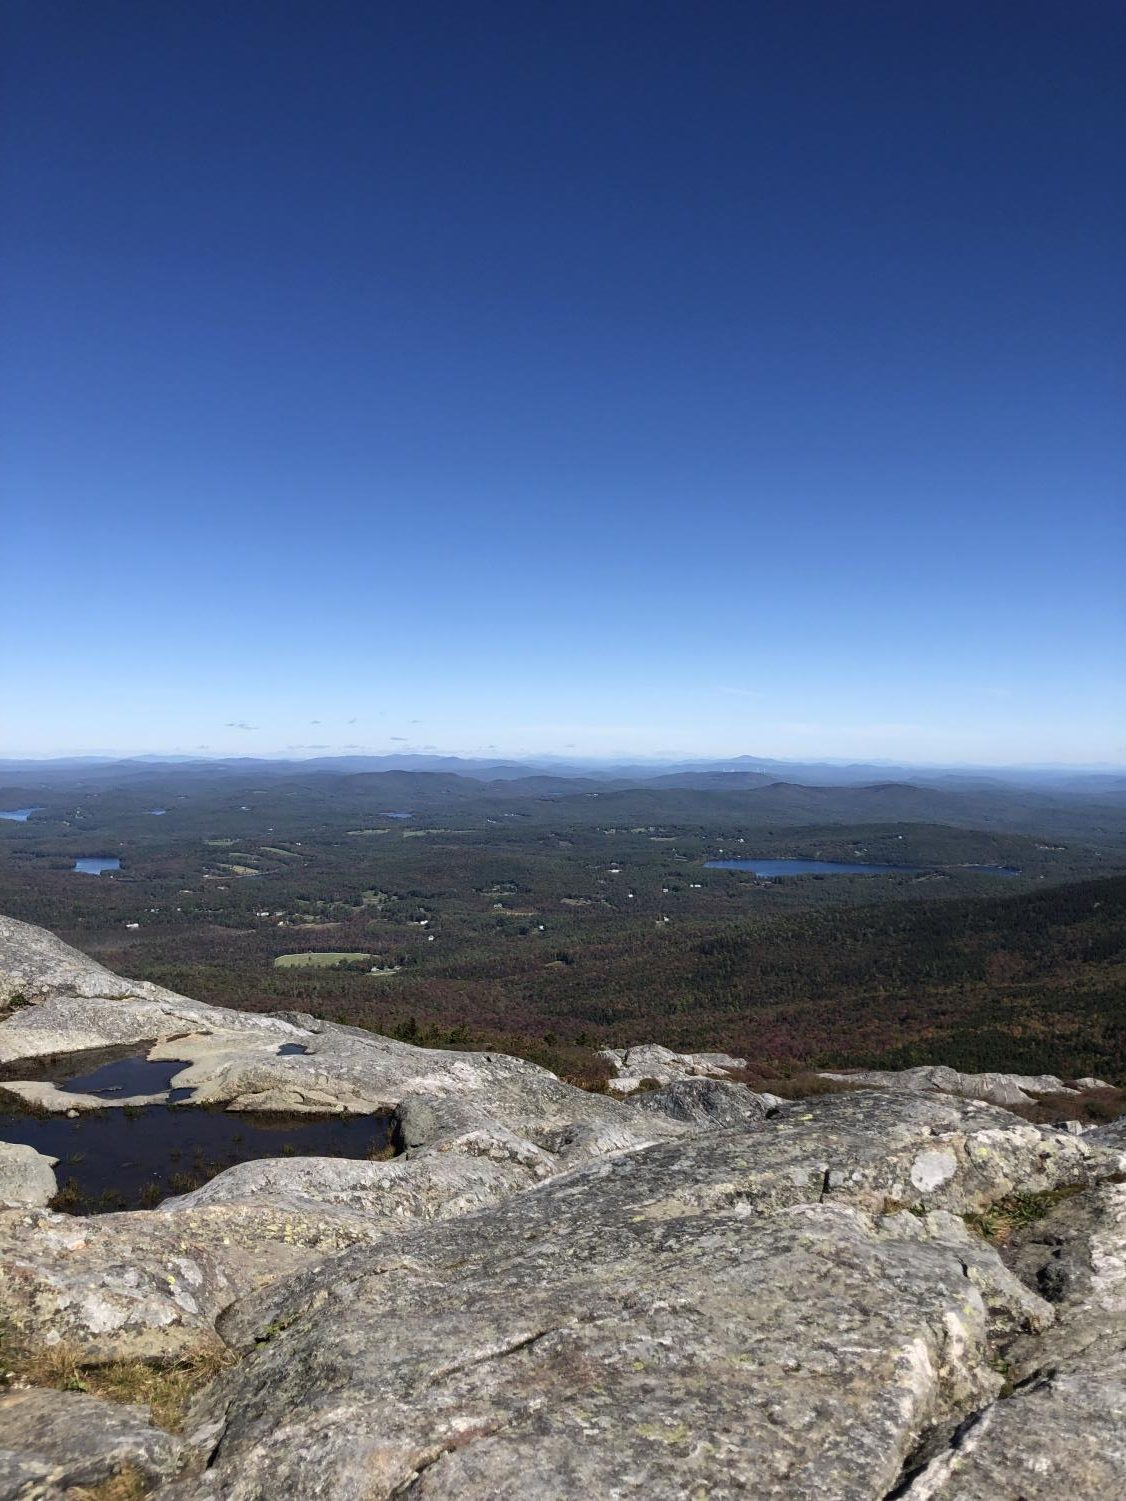 The Adventure in Literature senior seminar students took a field trip recently to Mount Monadnock.